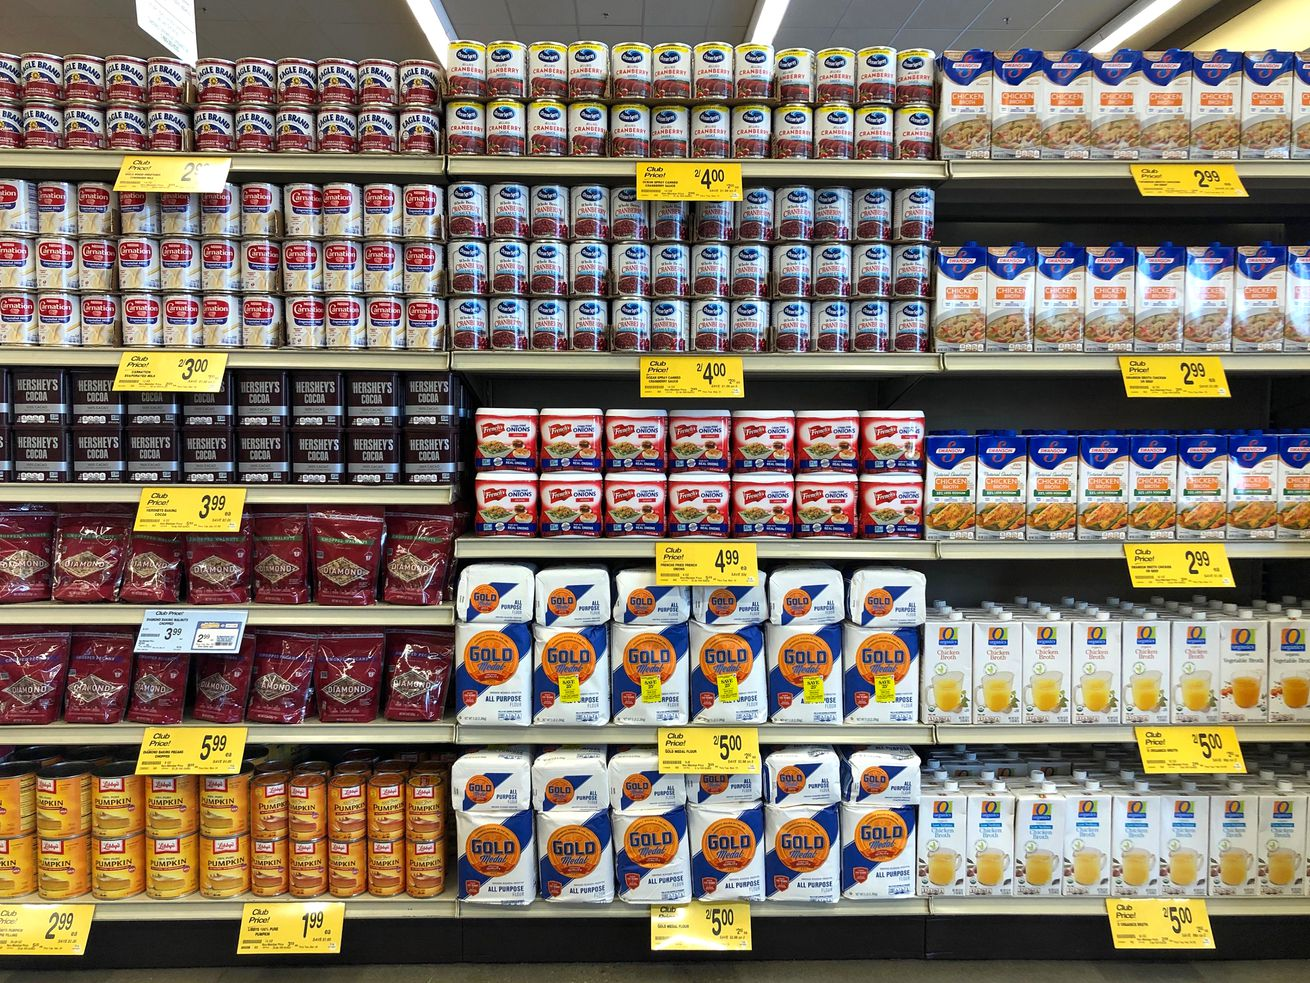 Grocery store shelves with cans of condensed milk, chocolate, pumpkin puree, cranberry sauce, flour